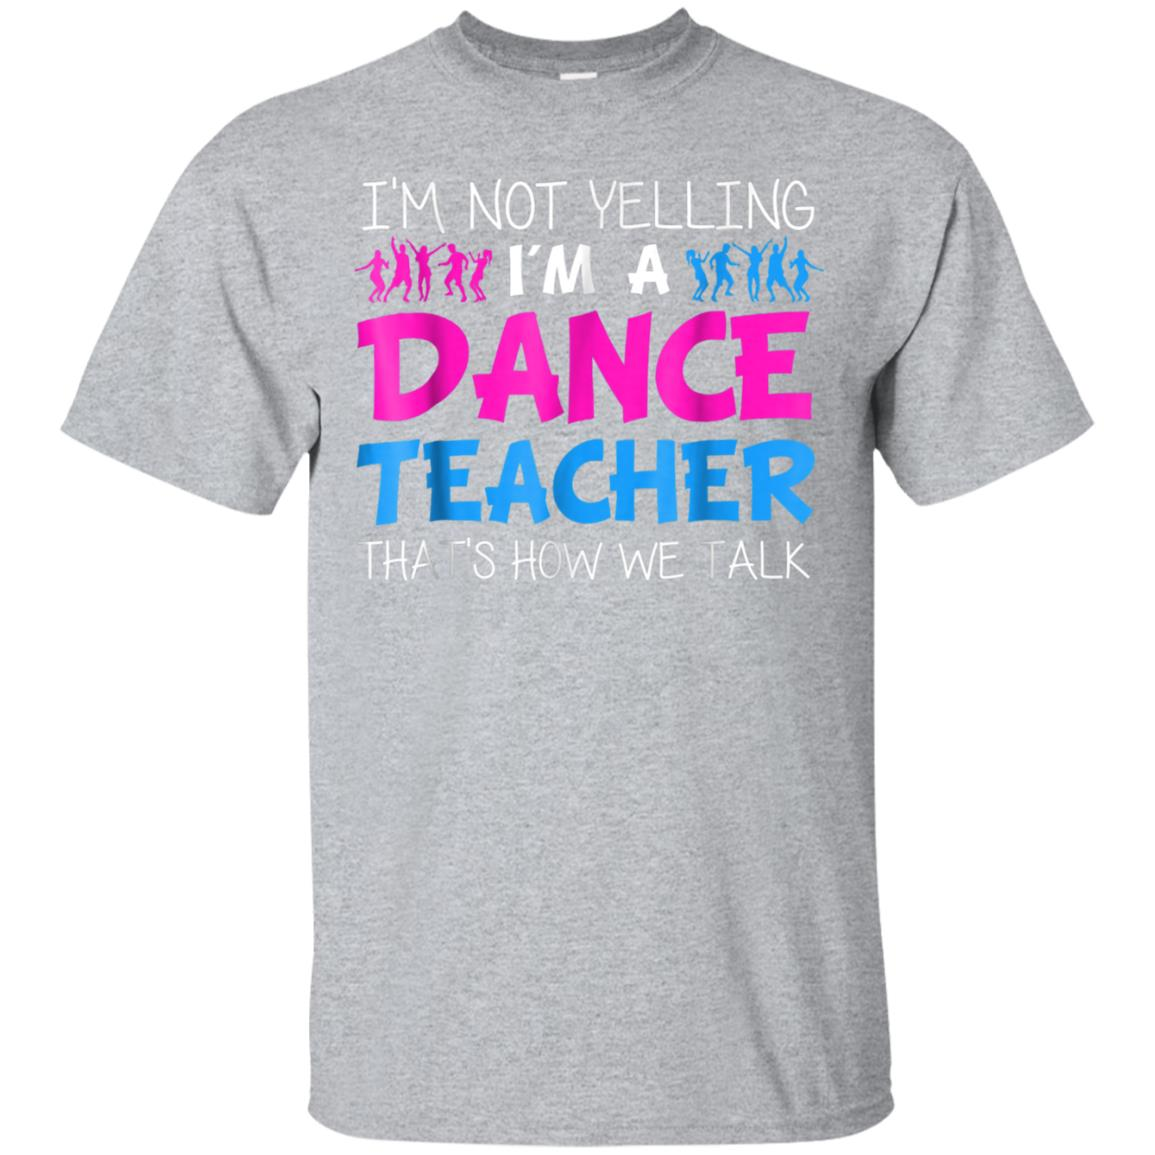 I'm Not Yelling I'm A Dance Teacher T-shirt 99promocode